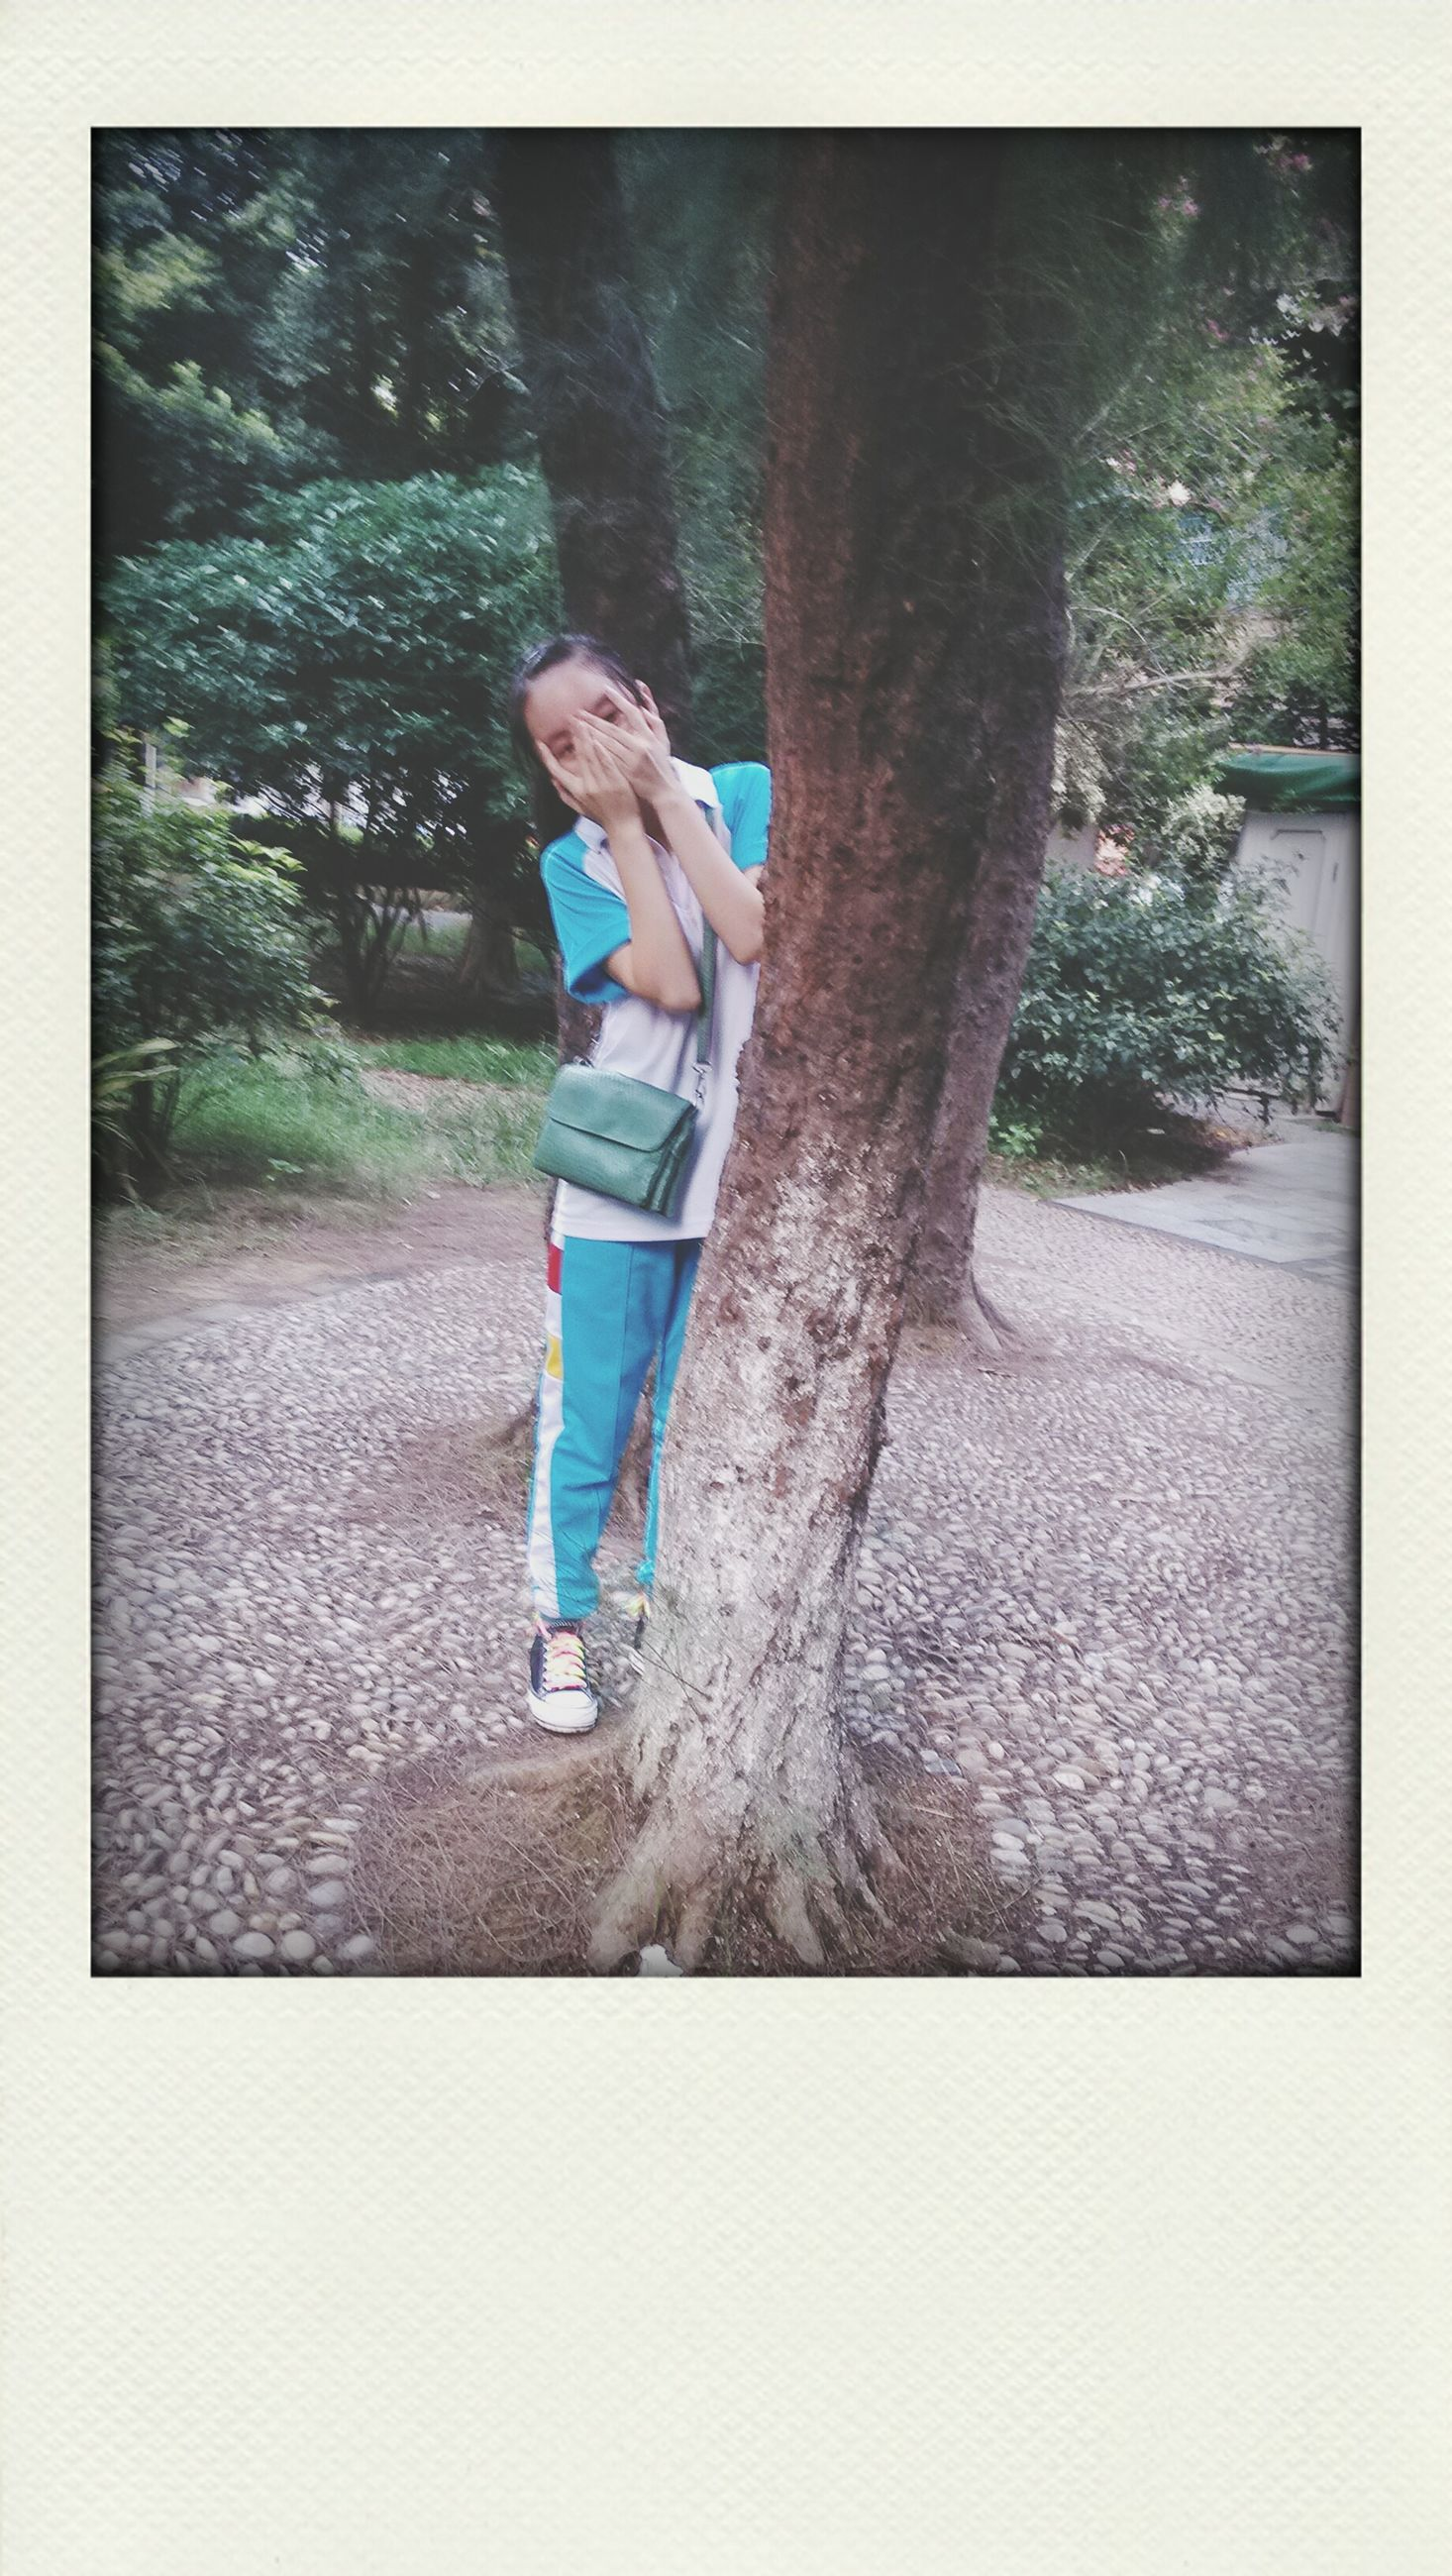 lifestyles, transfer print, full length, leisure activity, casual clothing, person, young adult, auto post production filter, front view, standing, childhood, young women, tree, fun, holding, elementary age, looking at camera, enjoyment